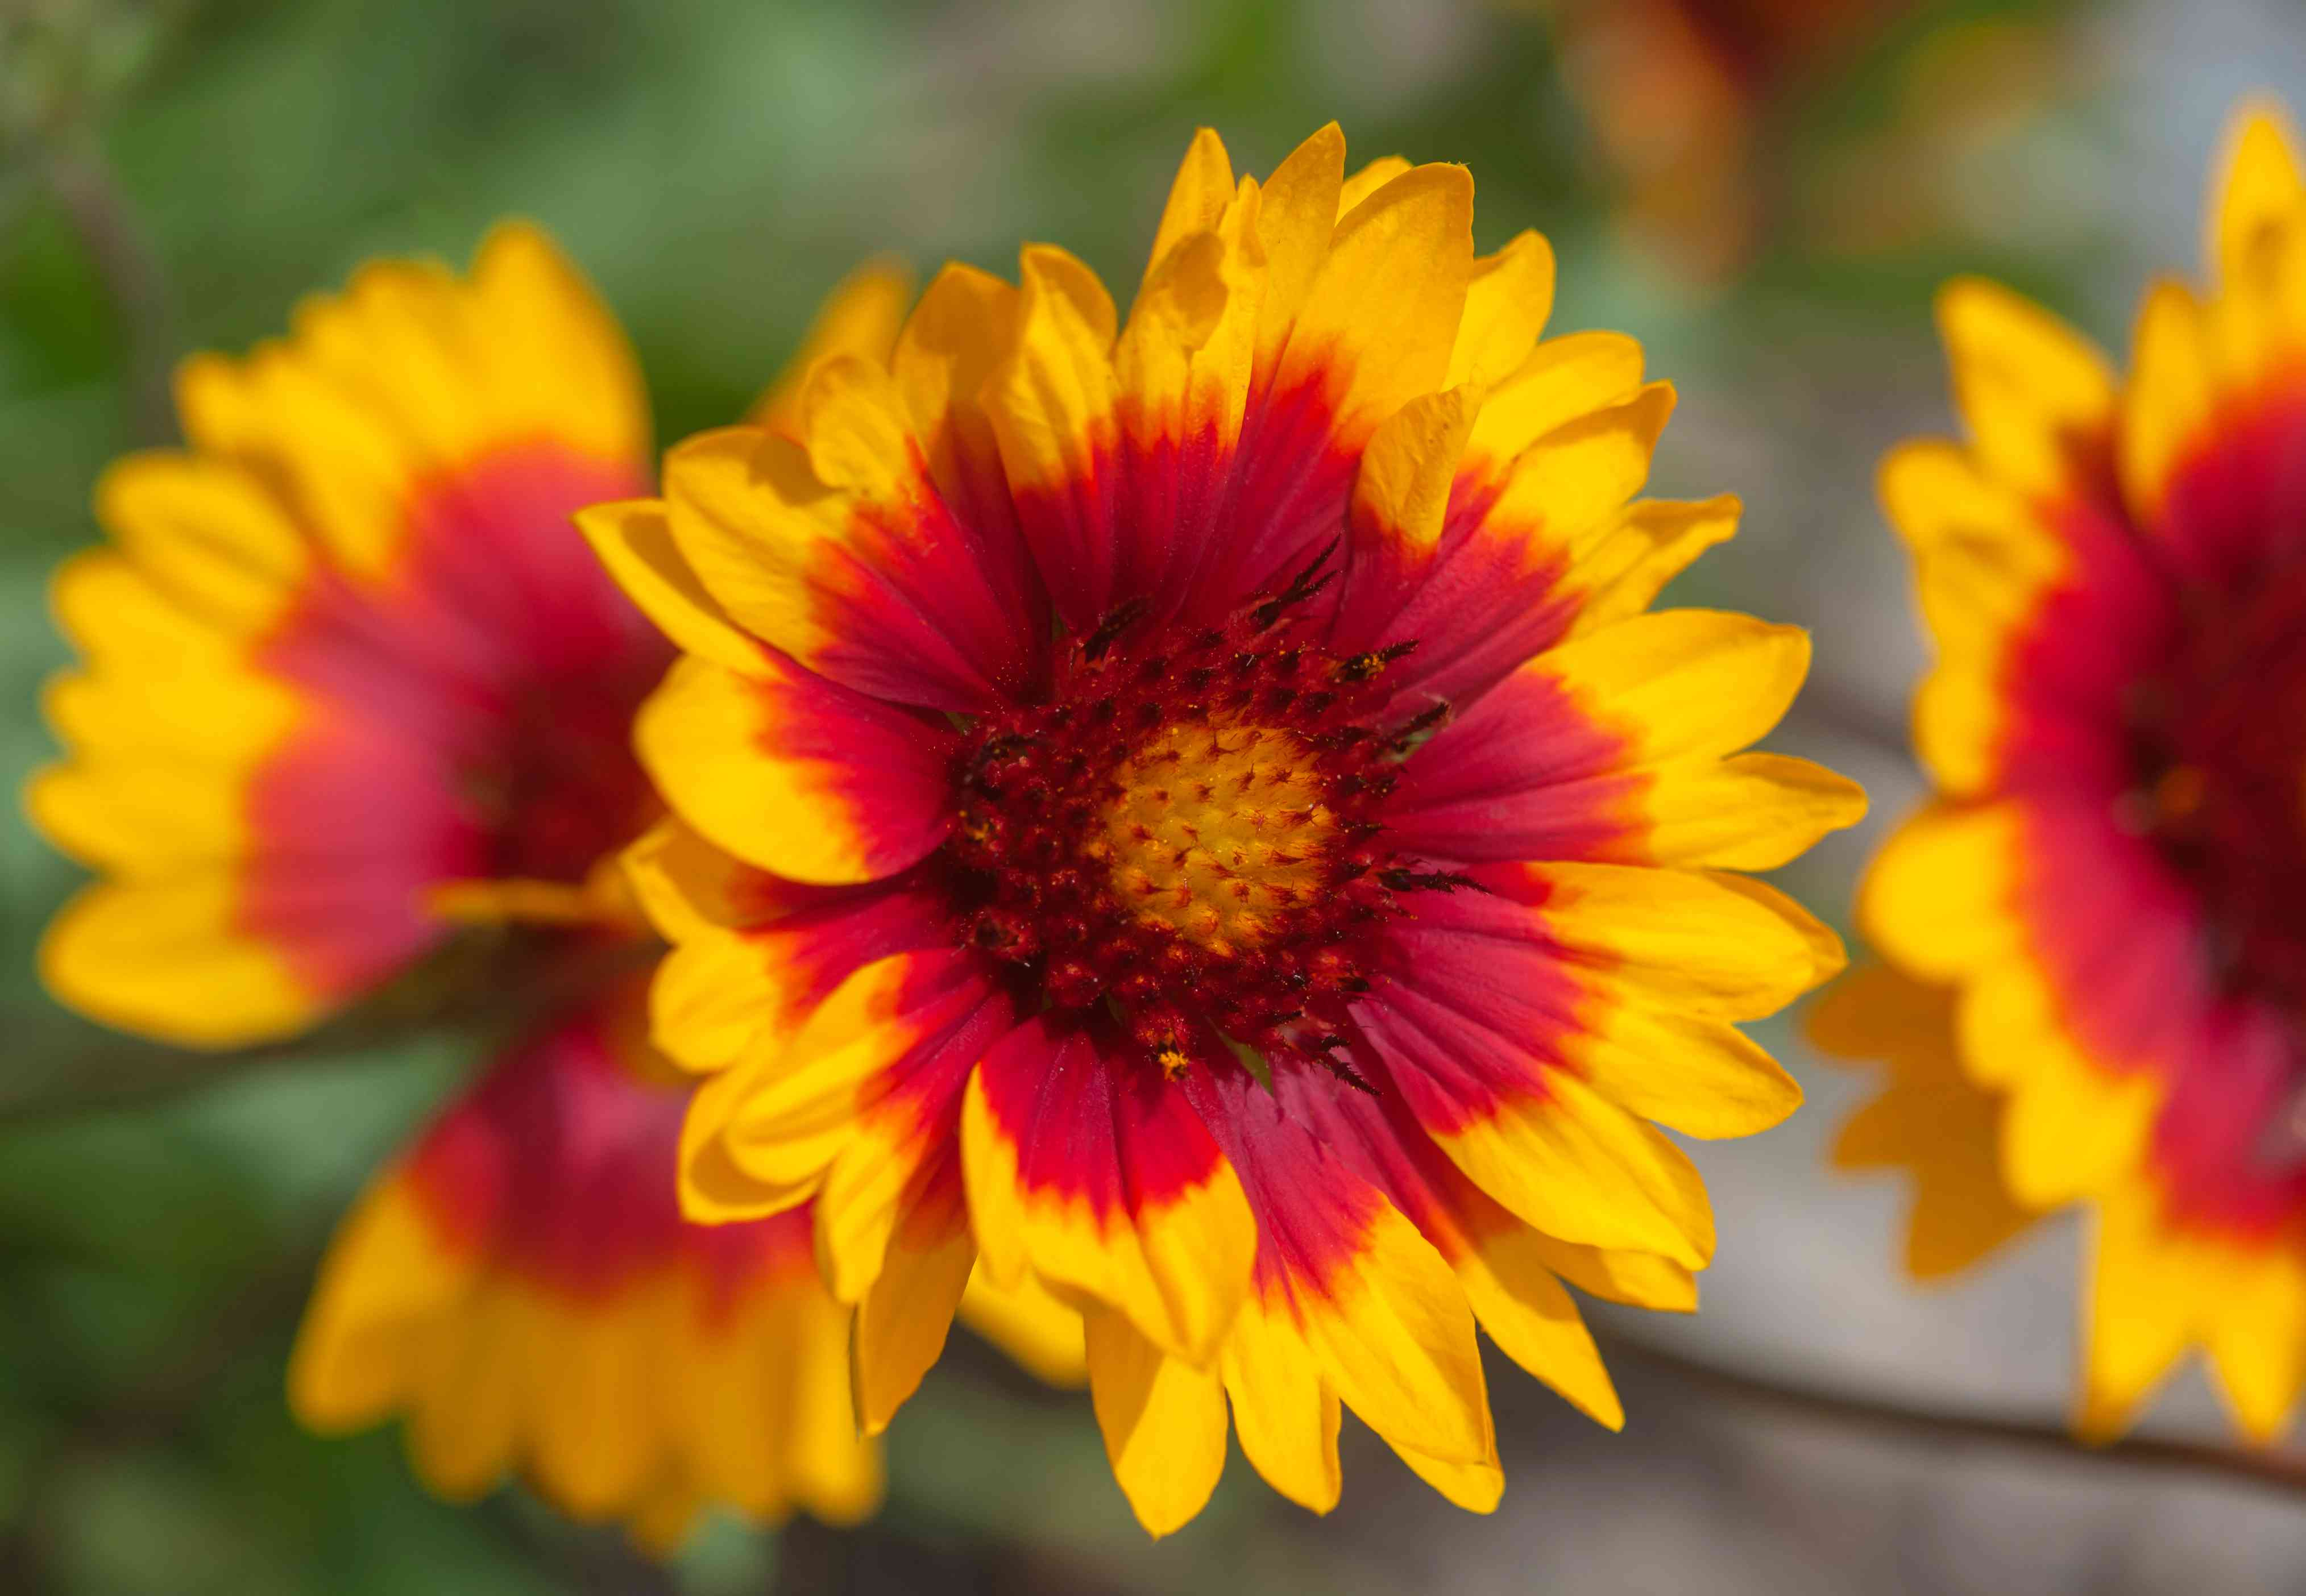 Blanket flowers with yellow and red petals closeup